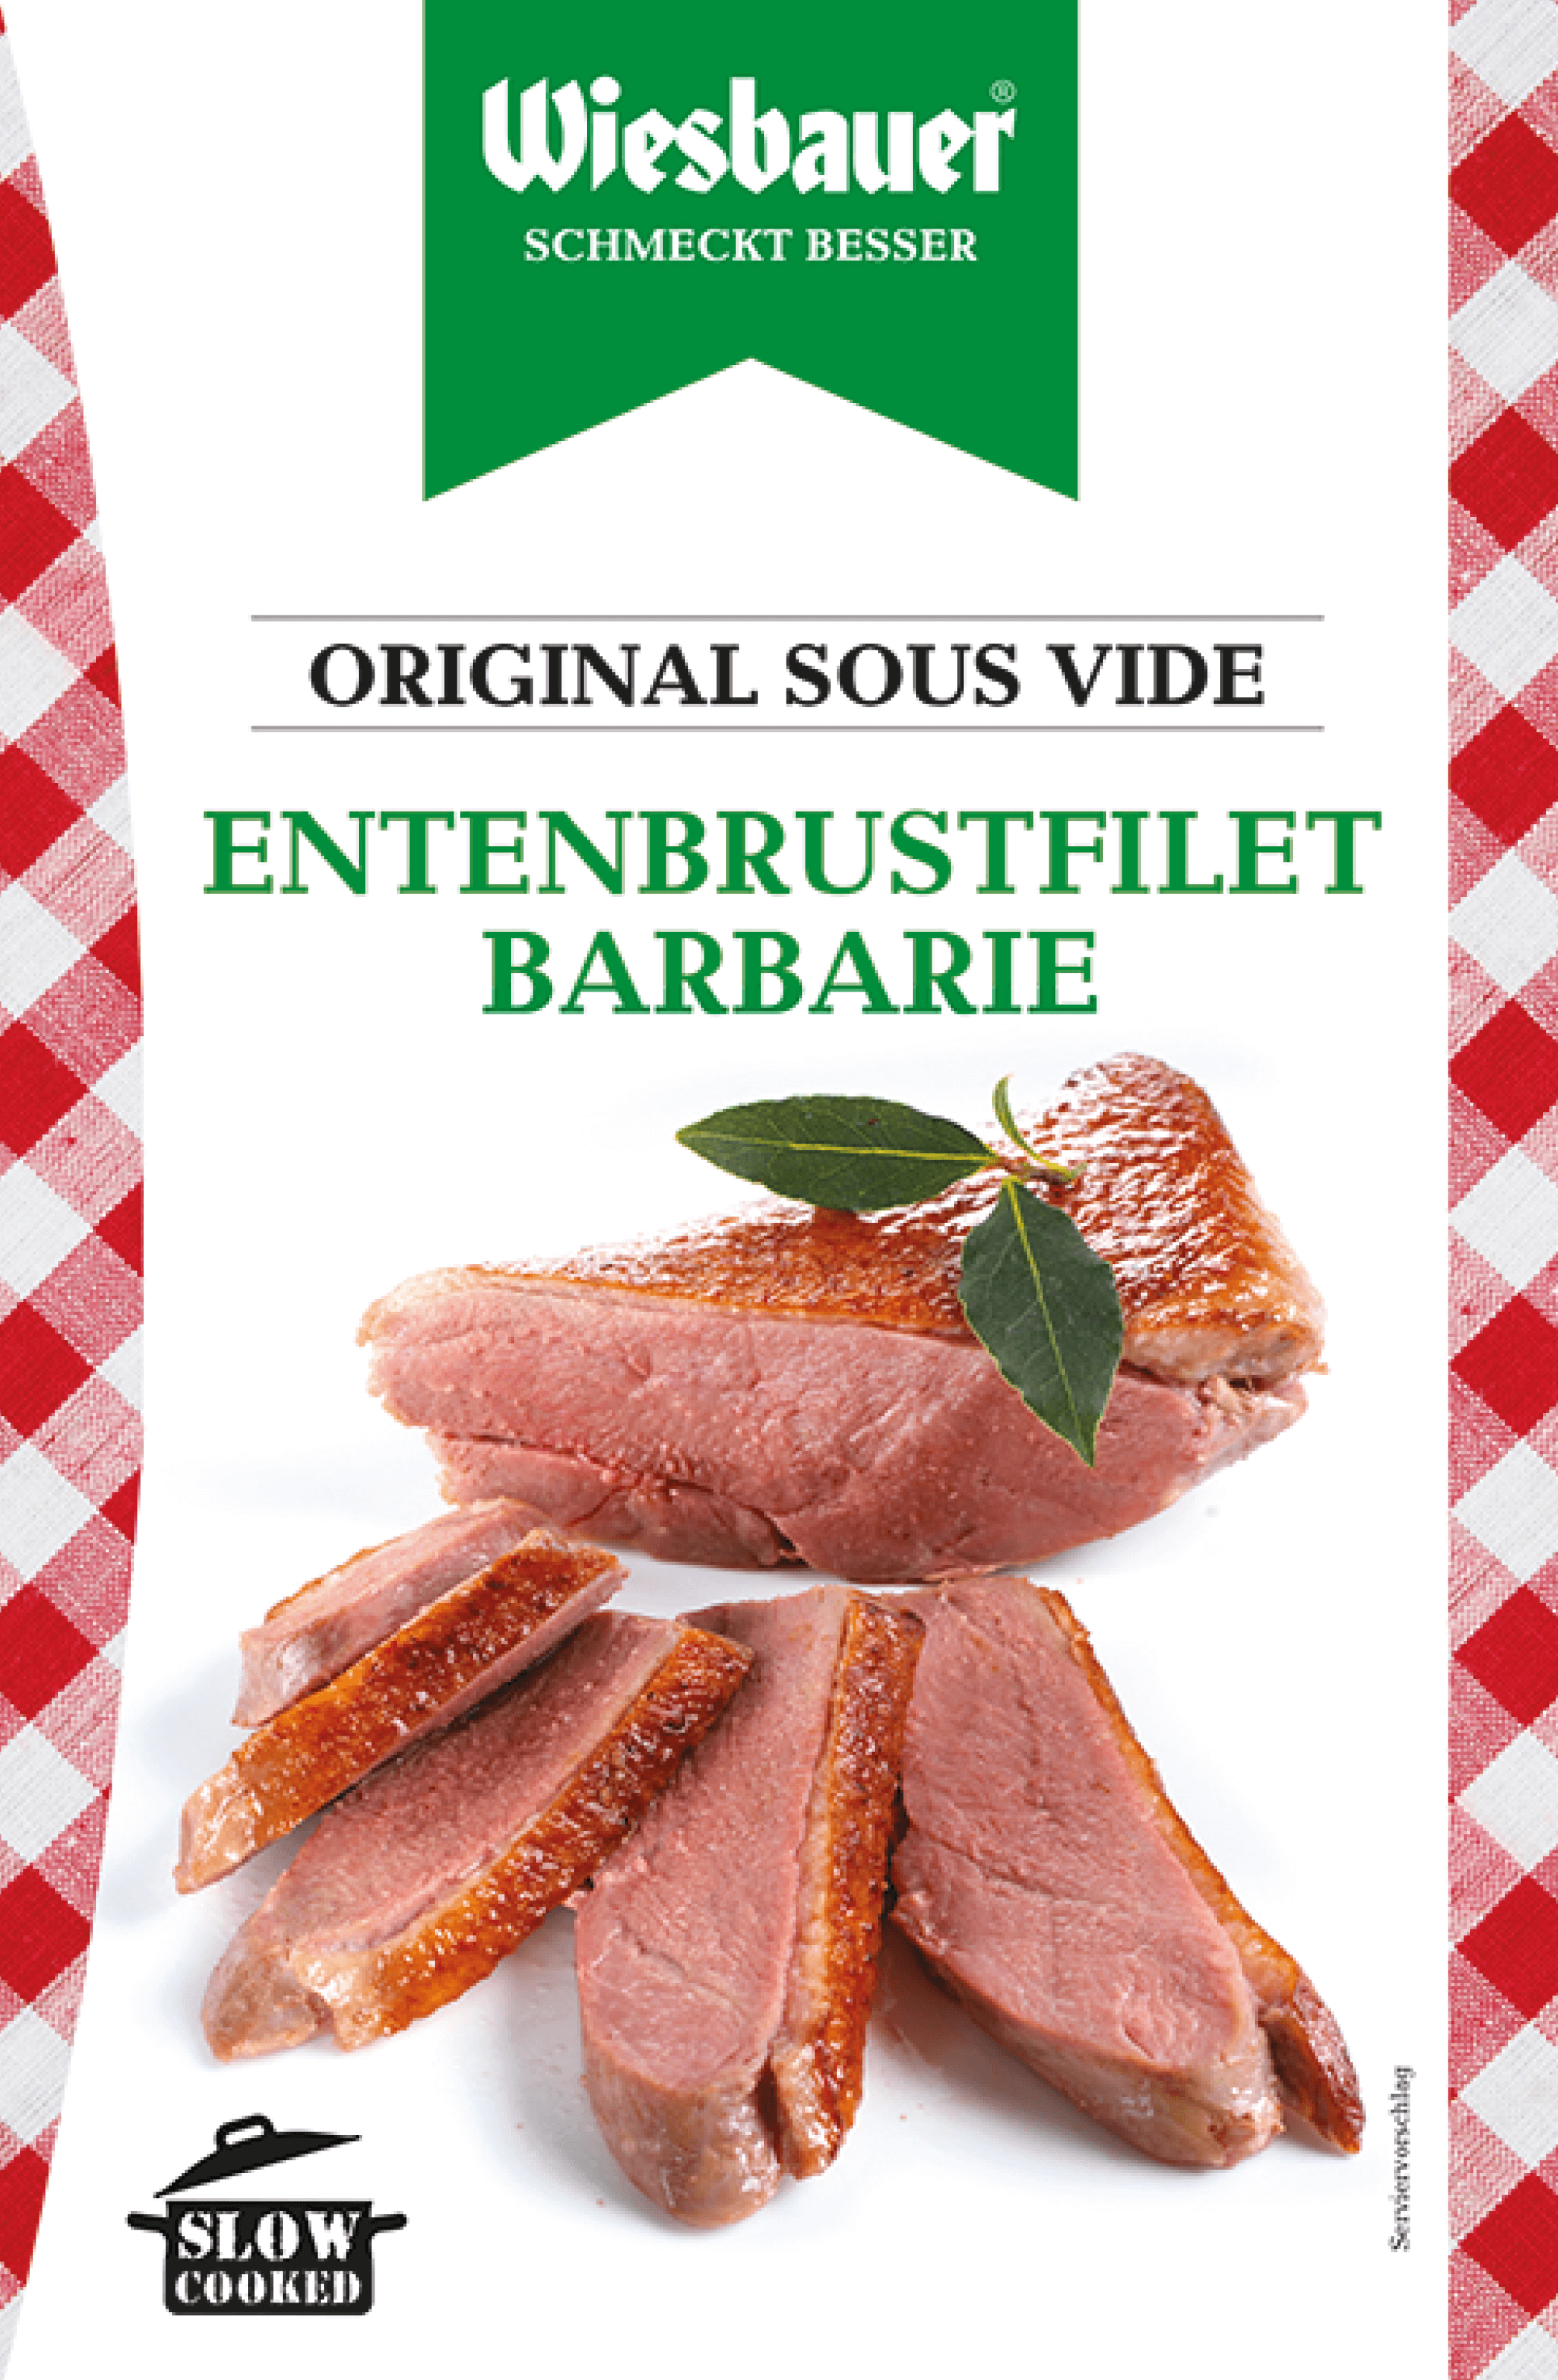 Entenbrustfilet Barbarie